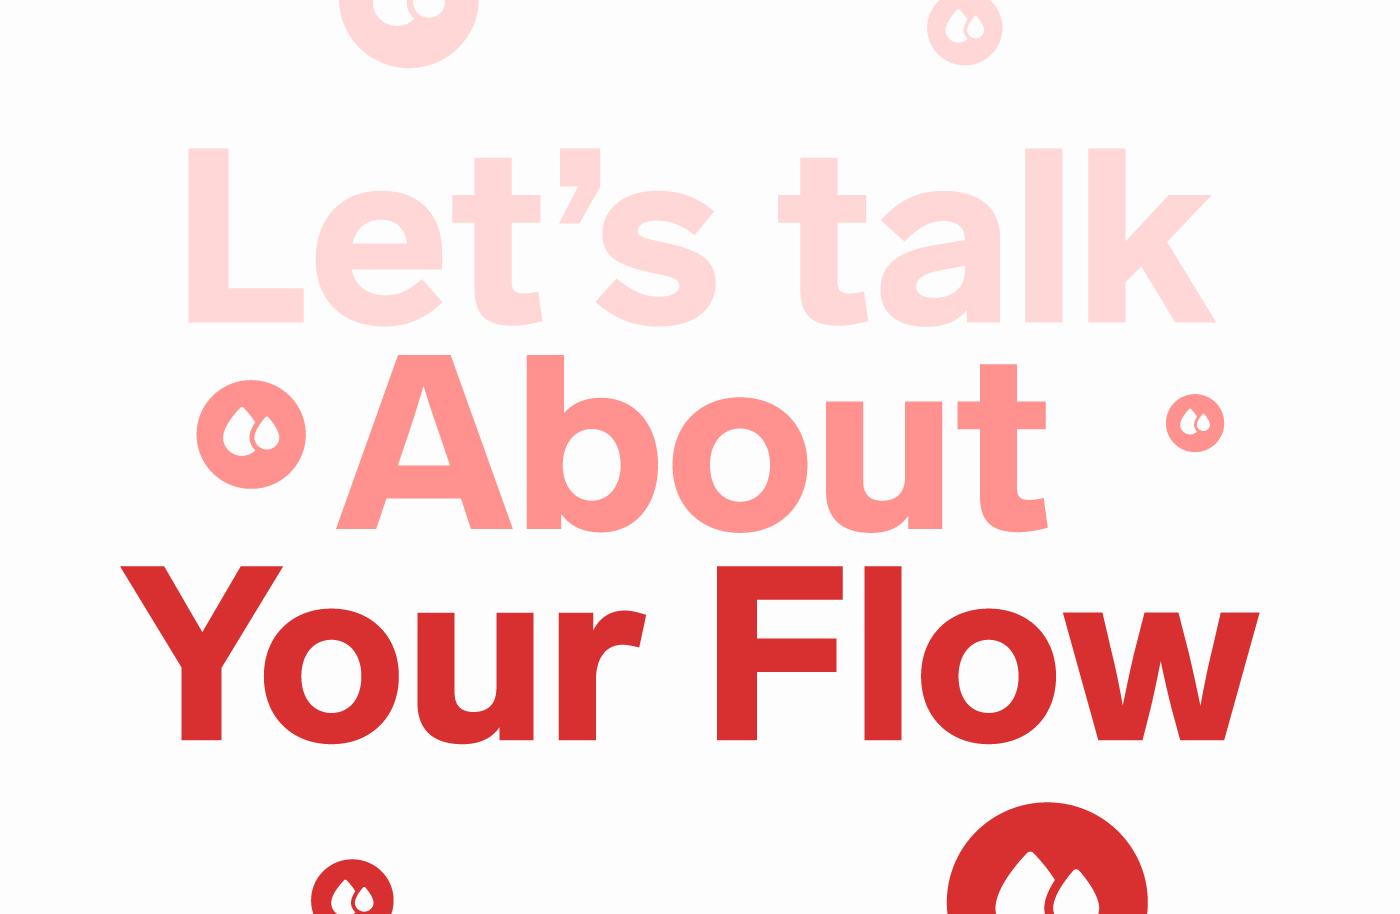 Let's talk about your flow.